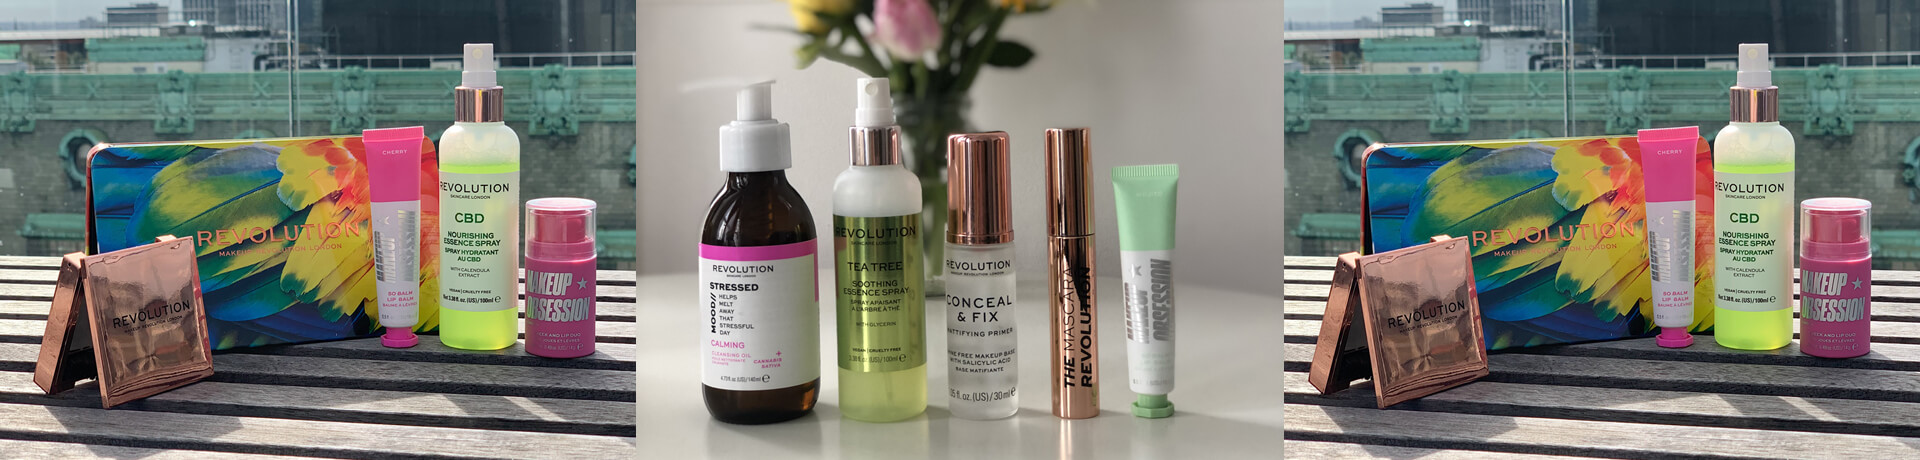 The 5 Beauty Items We're Self-Isolating With